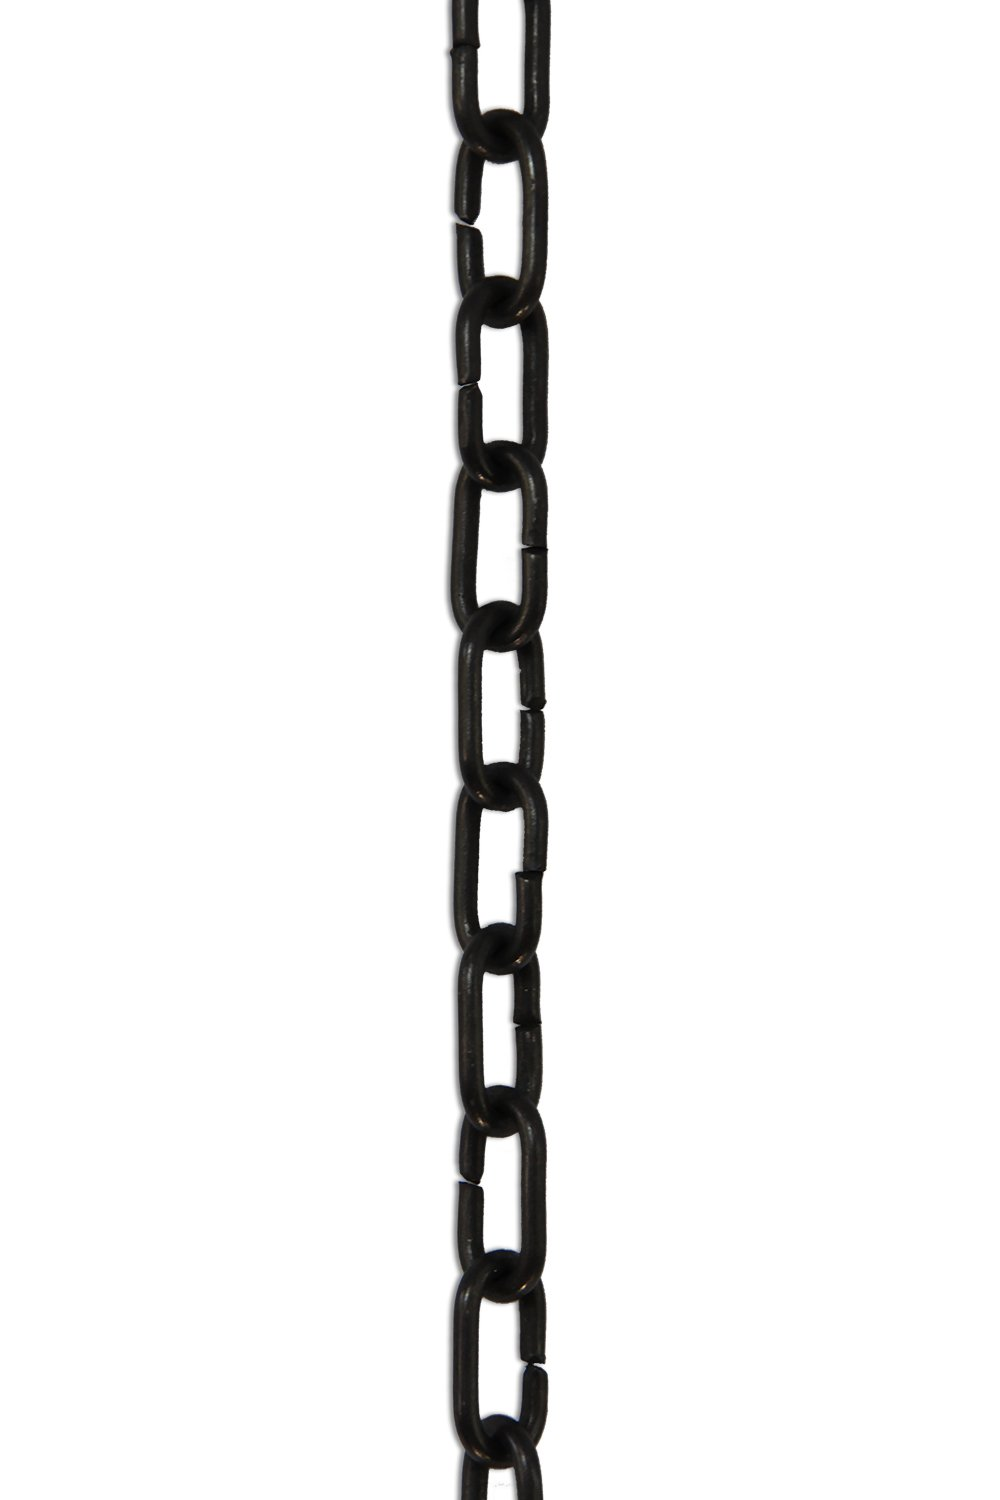 1 Foot RCH Hardware CH-07-OBB Decorative Polished Solid Chain for Hanging Oil Bronzed Black Lighting-Standard Unwelded Links